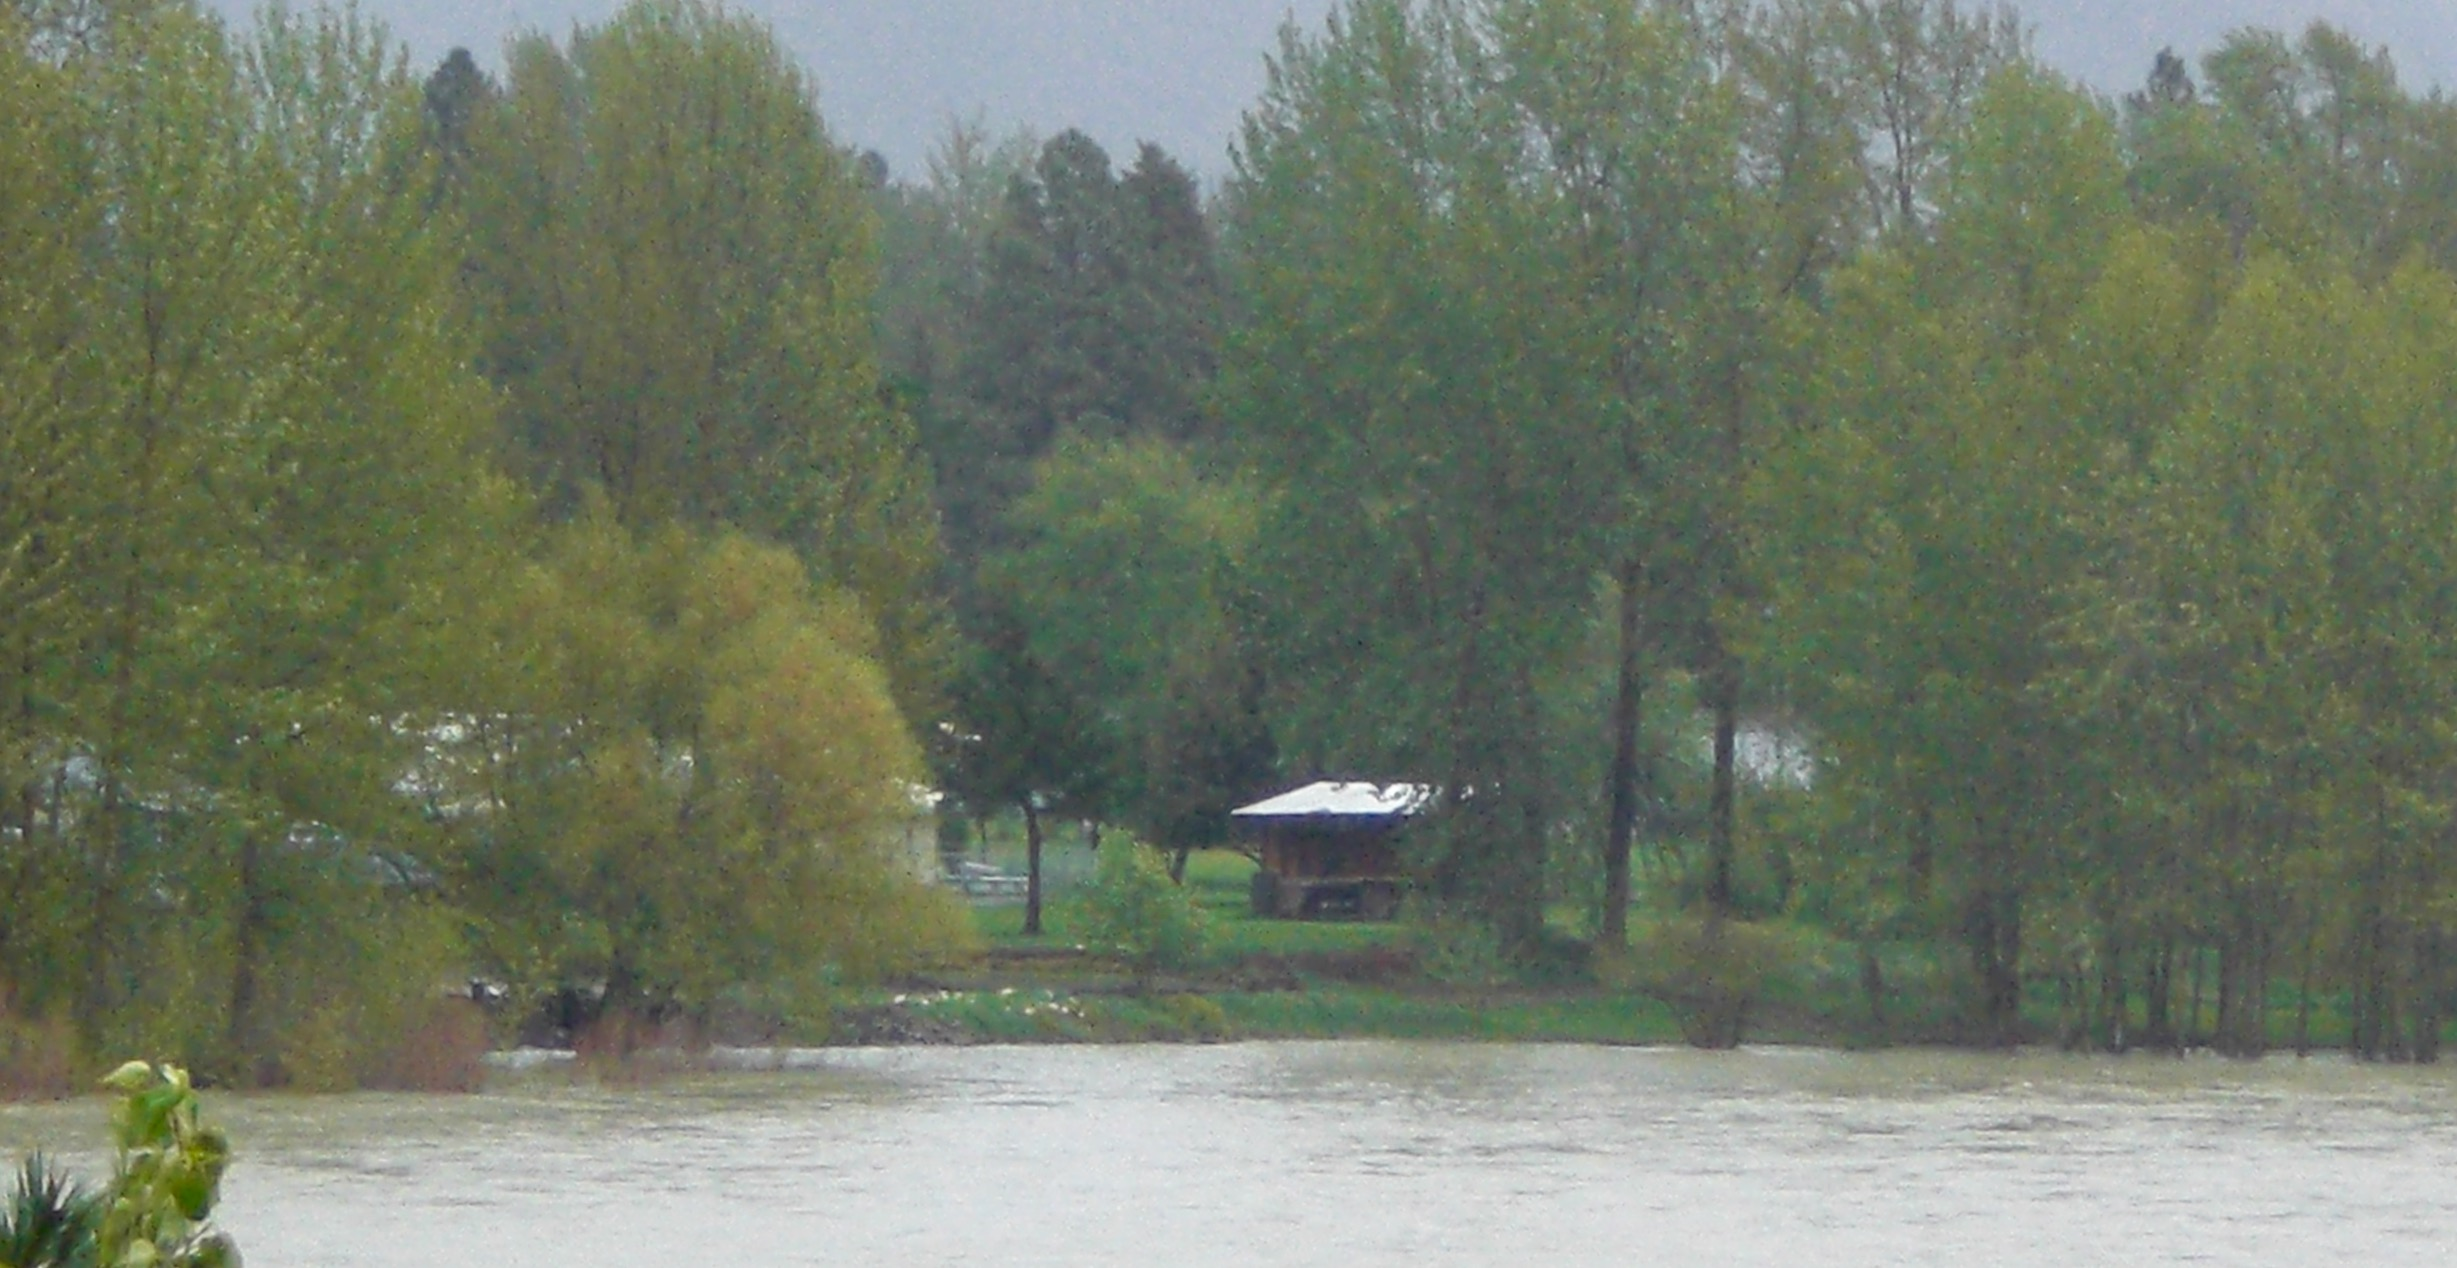 Rainy day on the Whitefish River